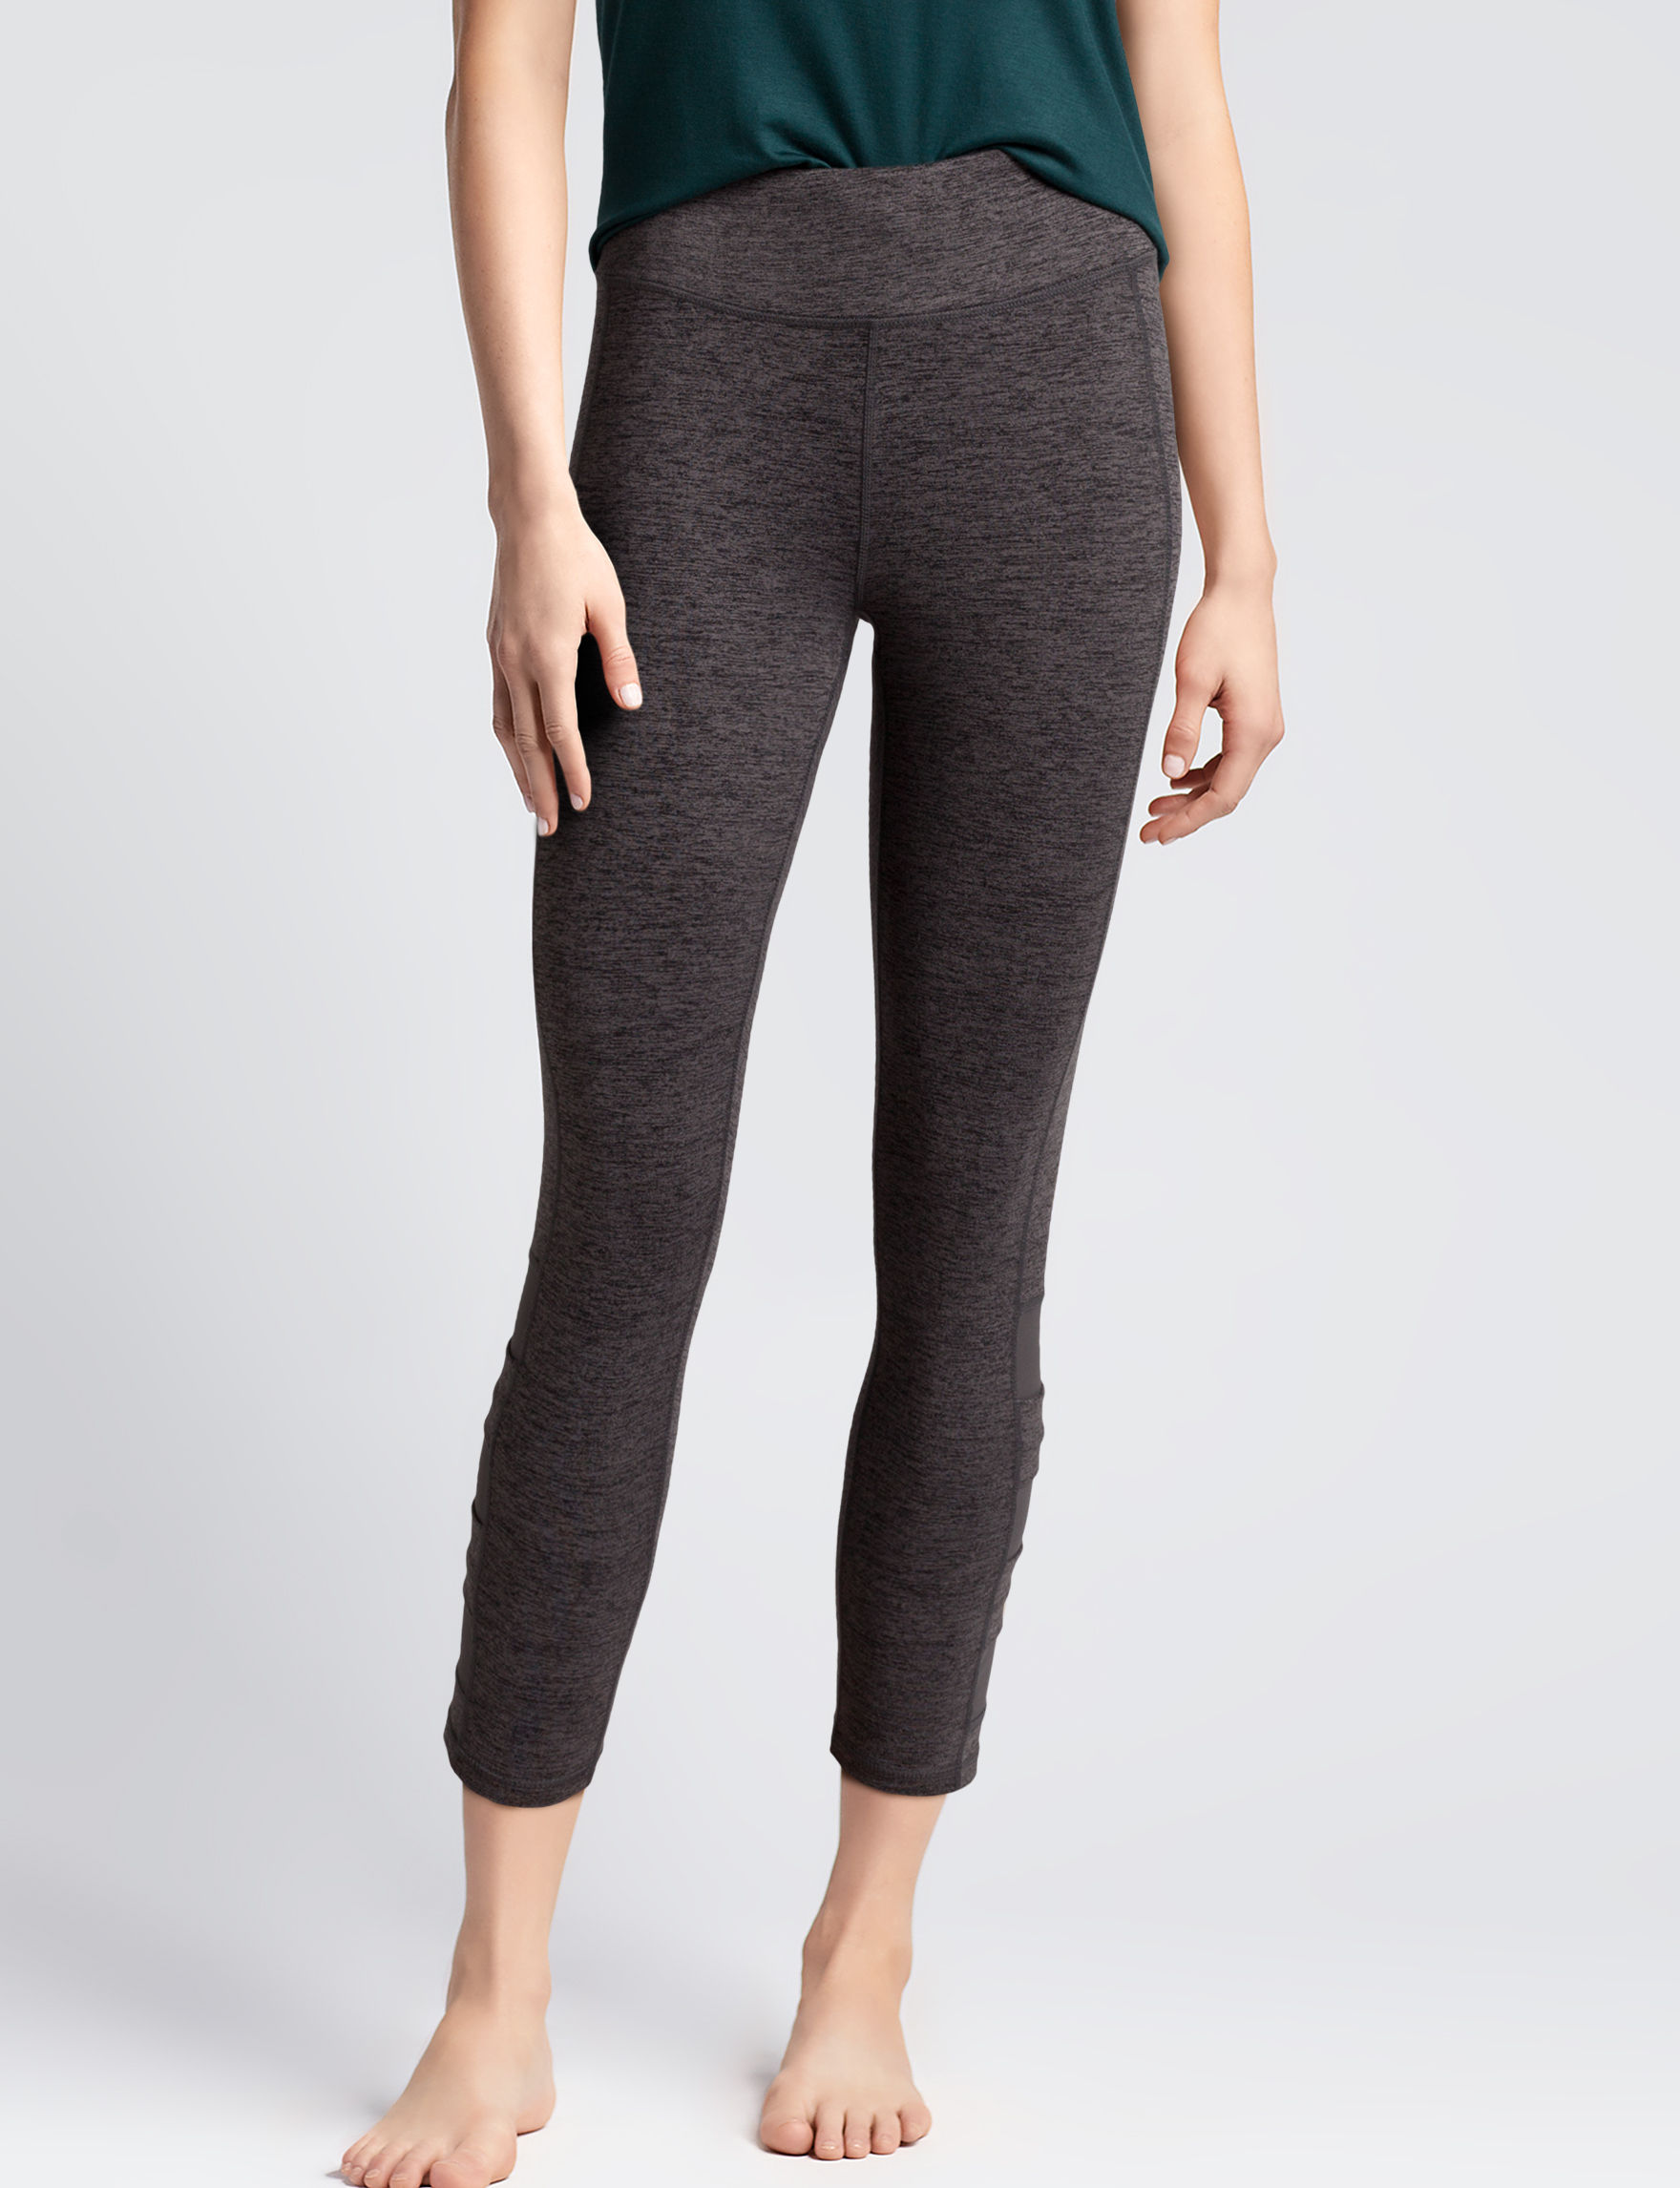 Gaiam Charcoal Leggings Stretch